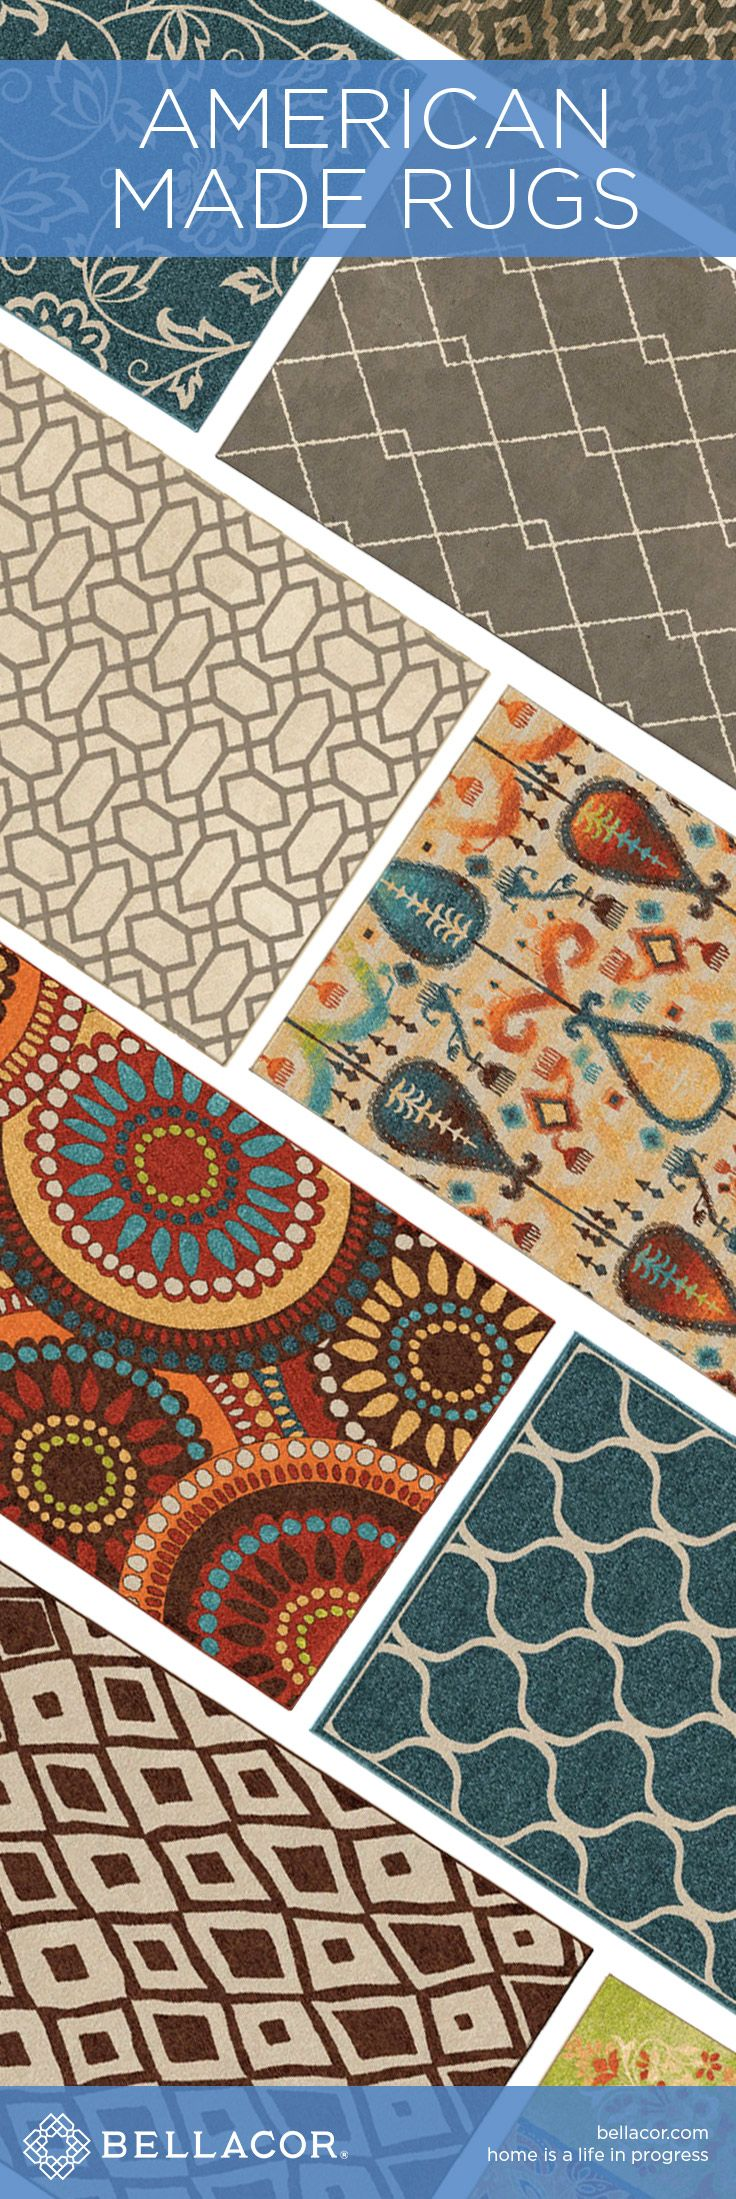 Shop American Made Rugs at http://www.bellacor.com/